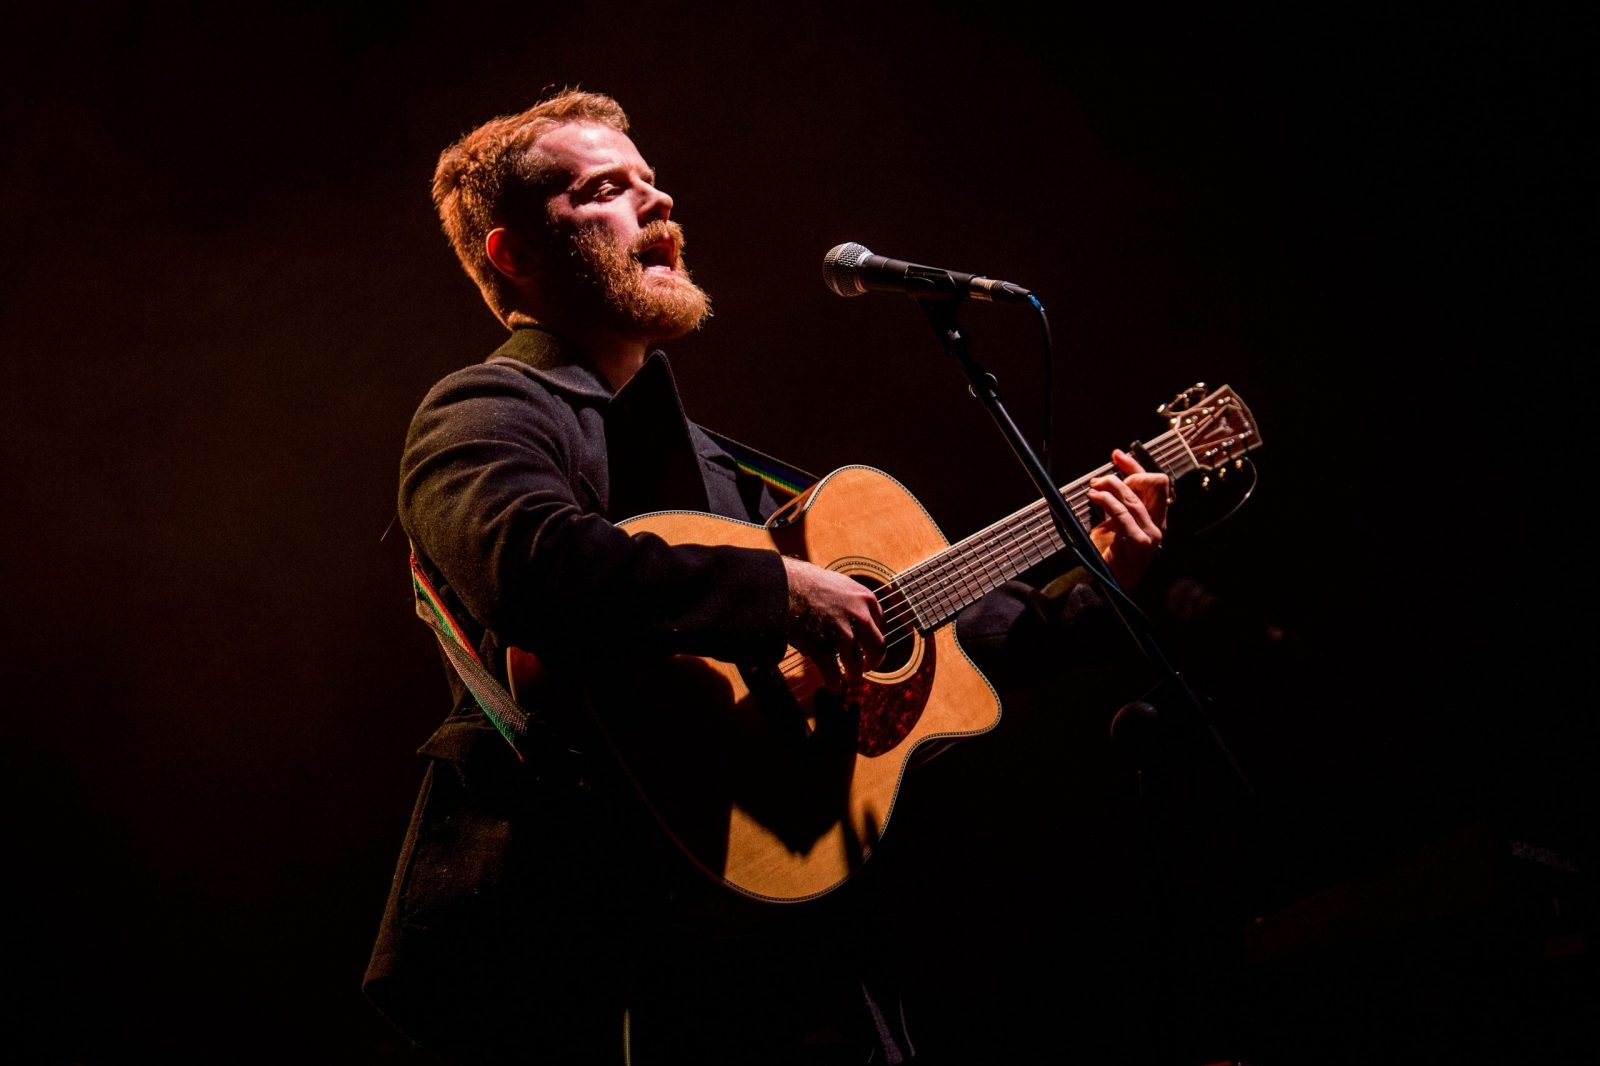 James Vincent McMorrow @ The Ulster Hall 4